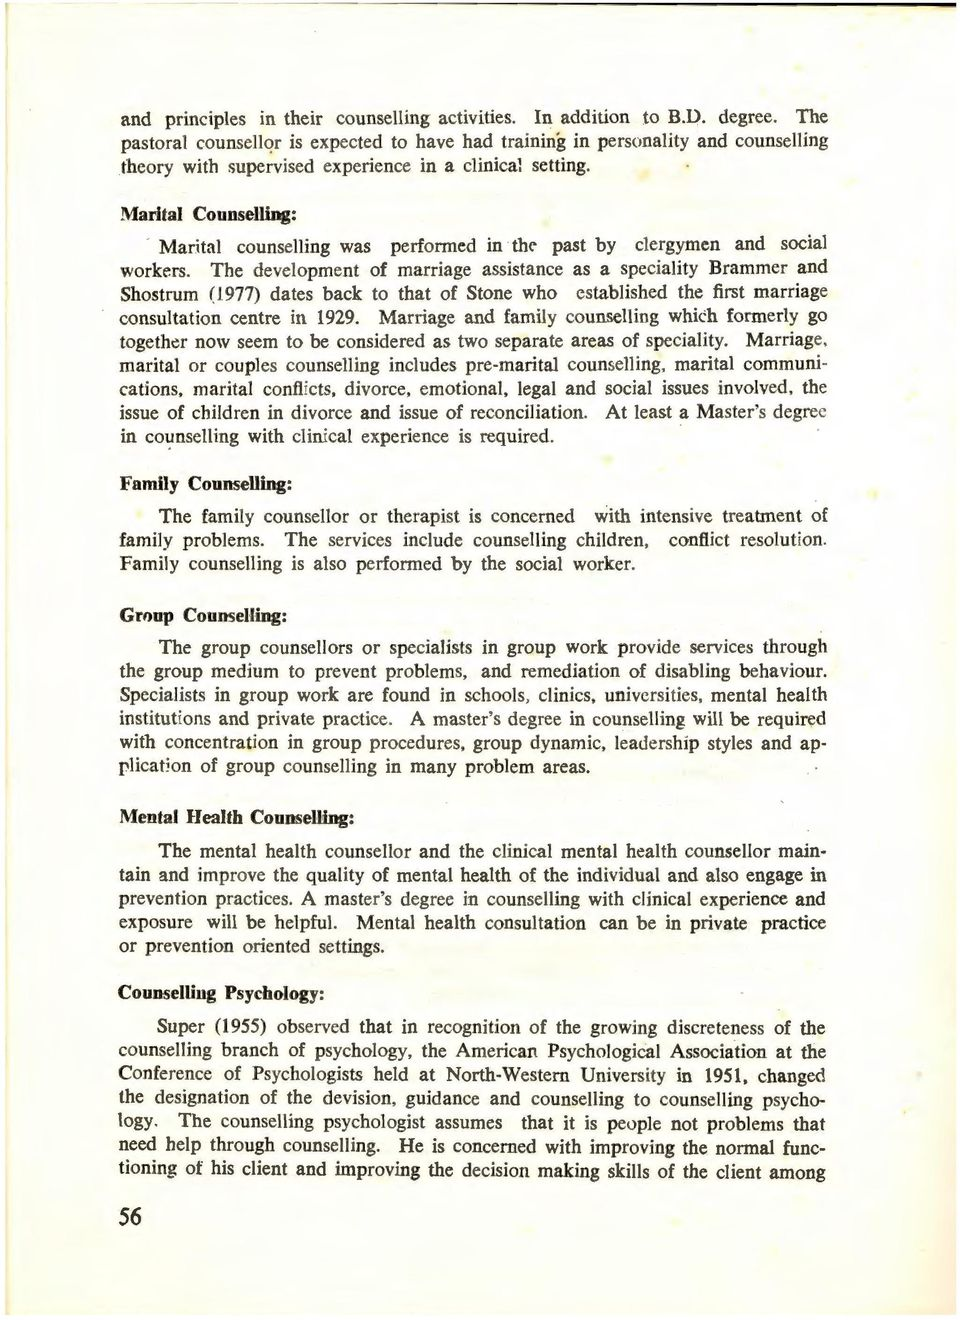 Marital Counselling: Marital counselling was performed in thc' past by clergymen and social workers.